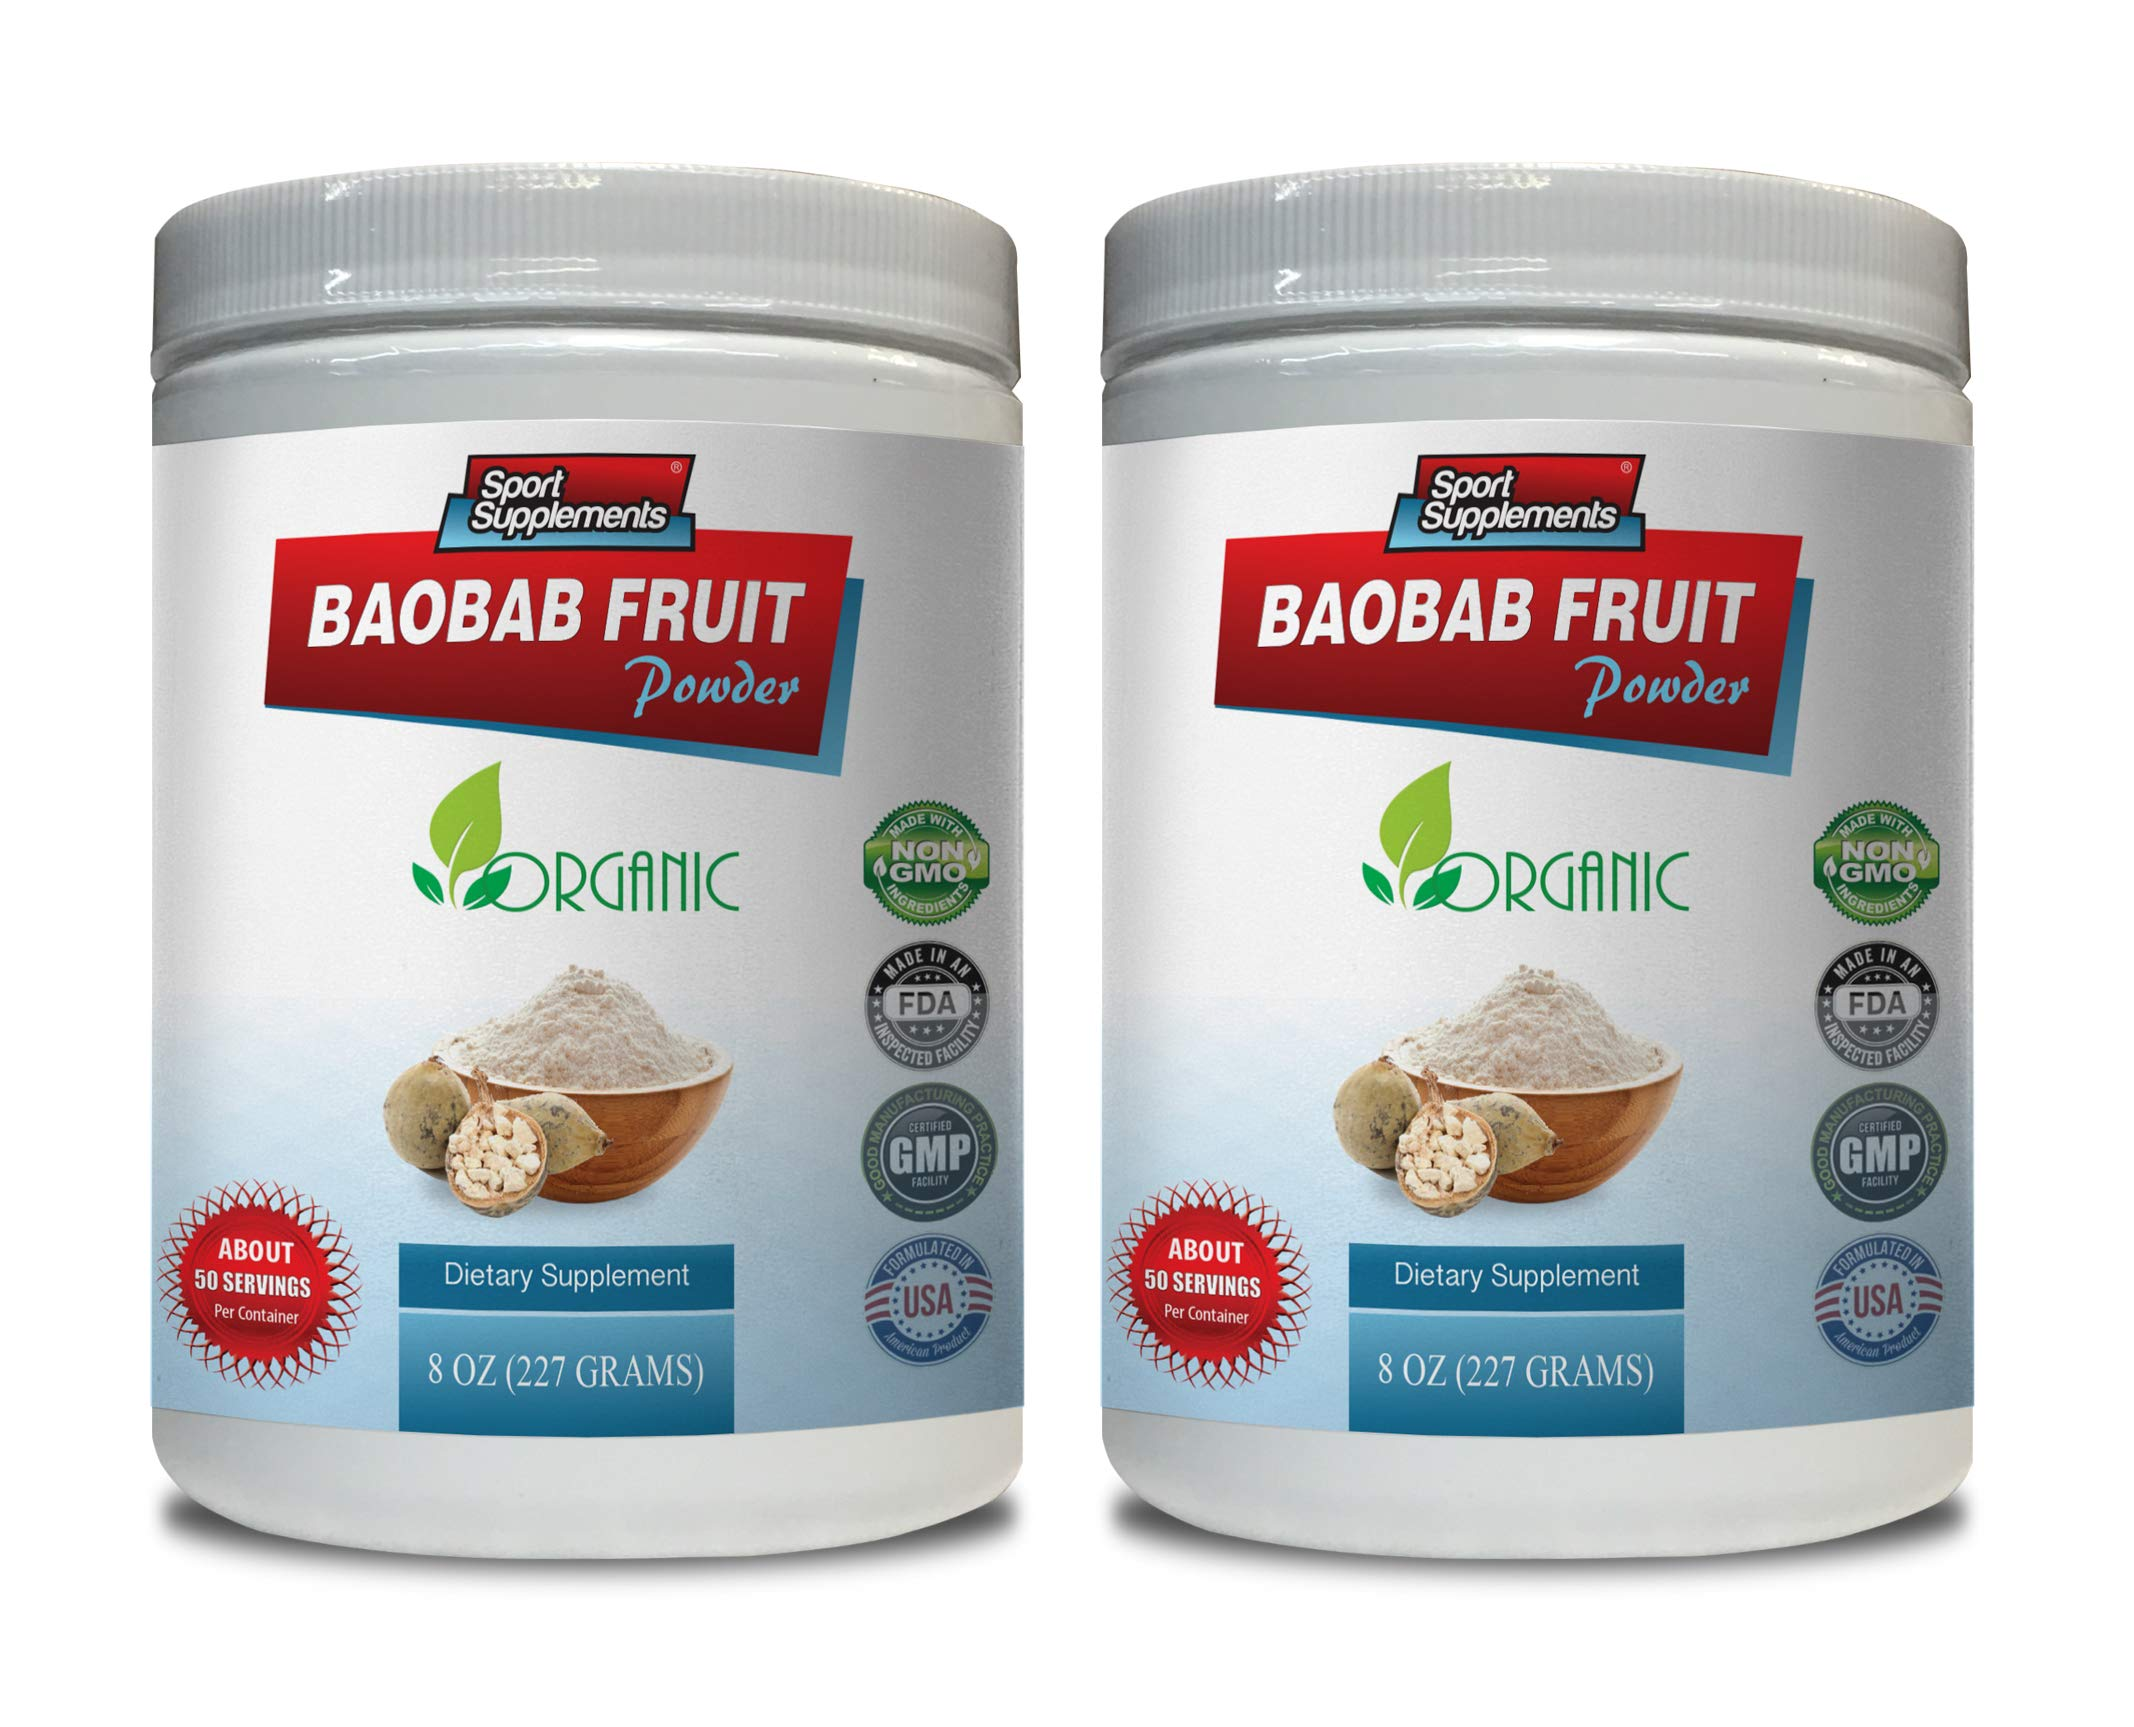 Immune System Supplement - Baobab Fruit Powder - Organic Dietary Supplement - Digestive aid Complex - 2 Cans 16 OZ (100 Servings)